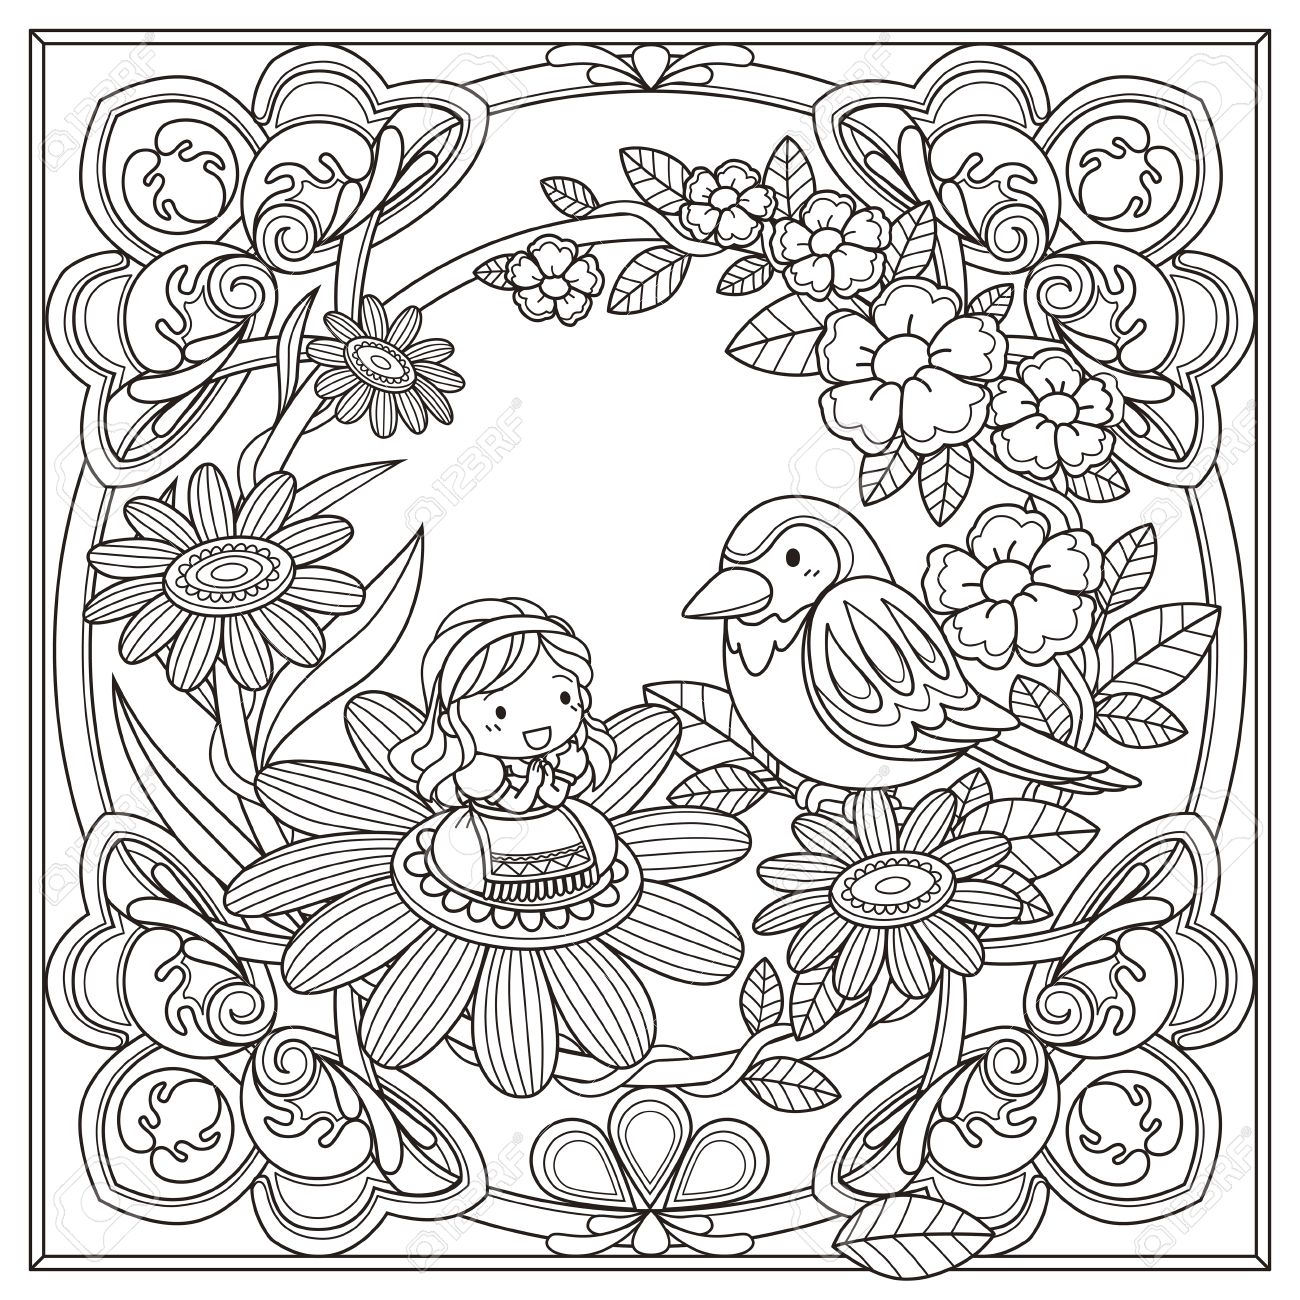 Coloring book for girl - Vector Black And White Pattern For Coloring Book For Adults With Adorable Girl And Bird Background